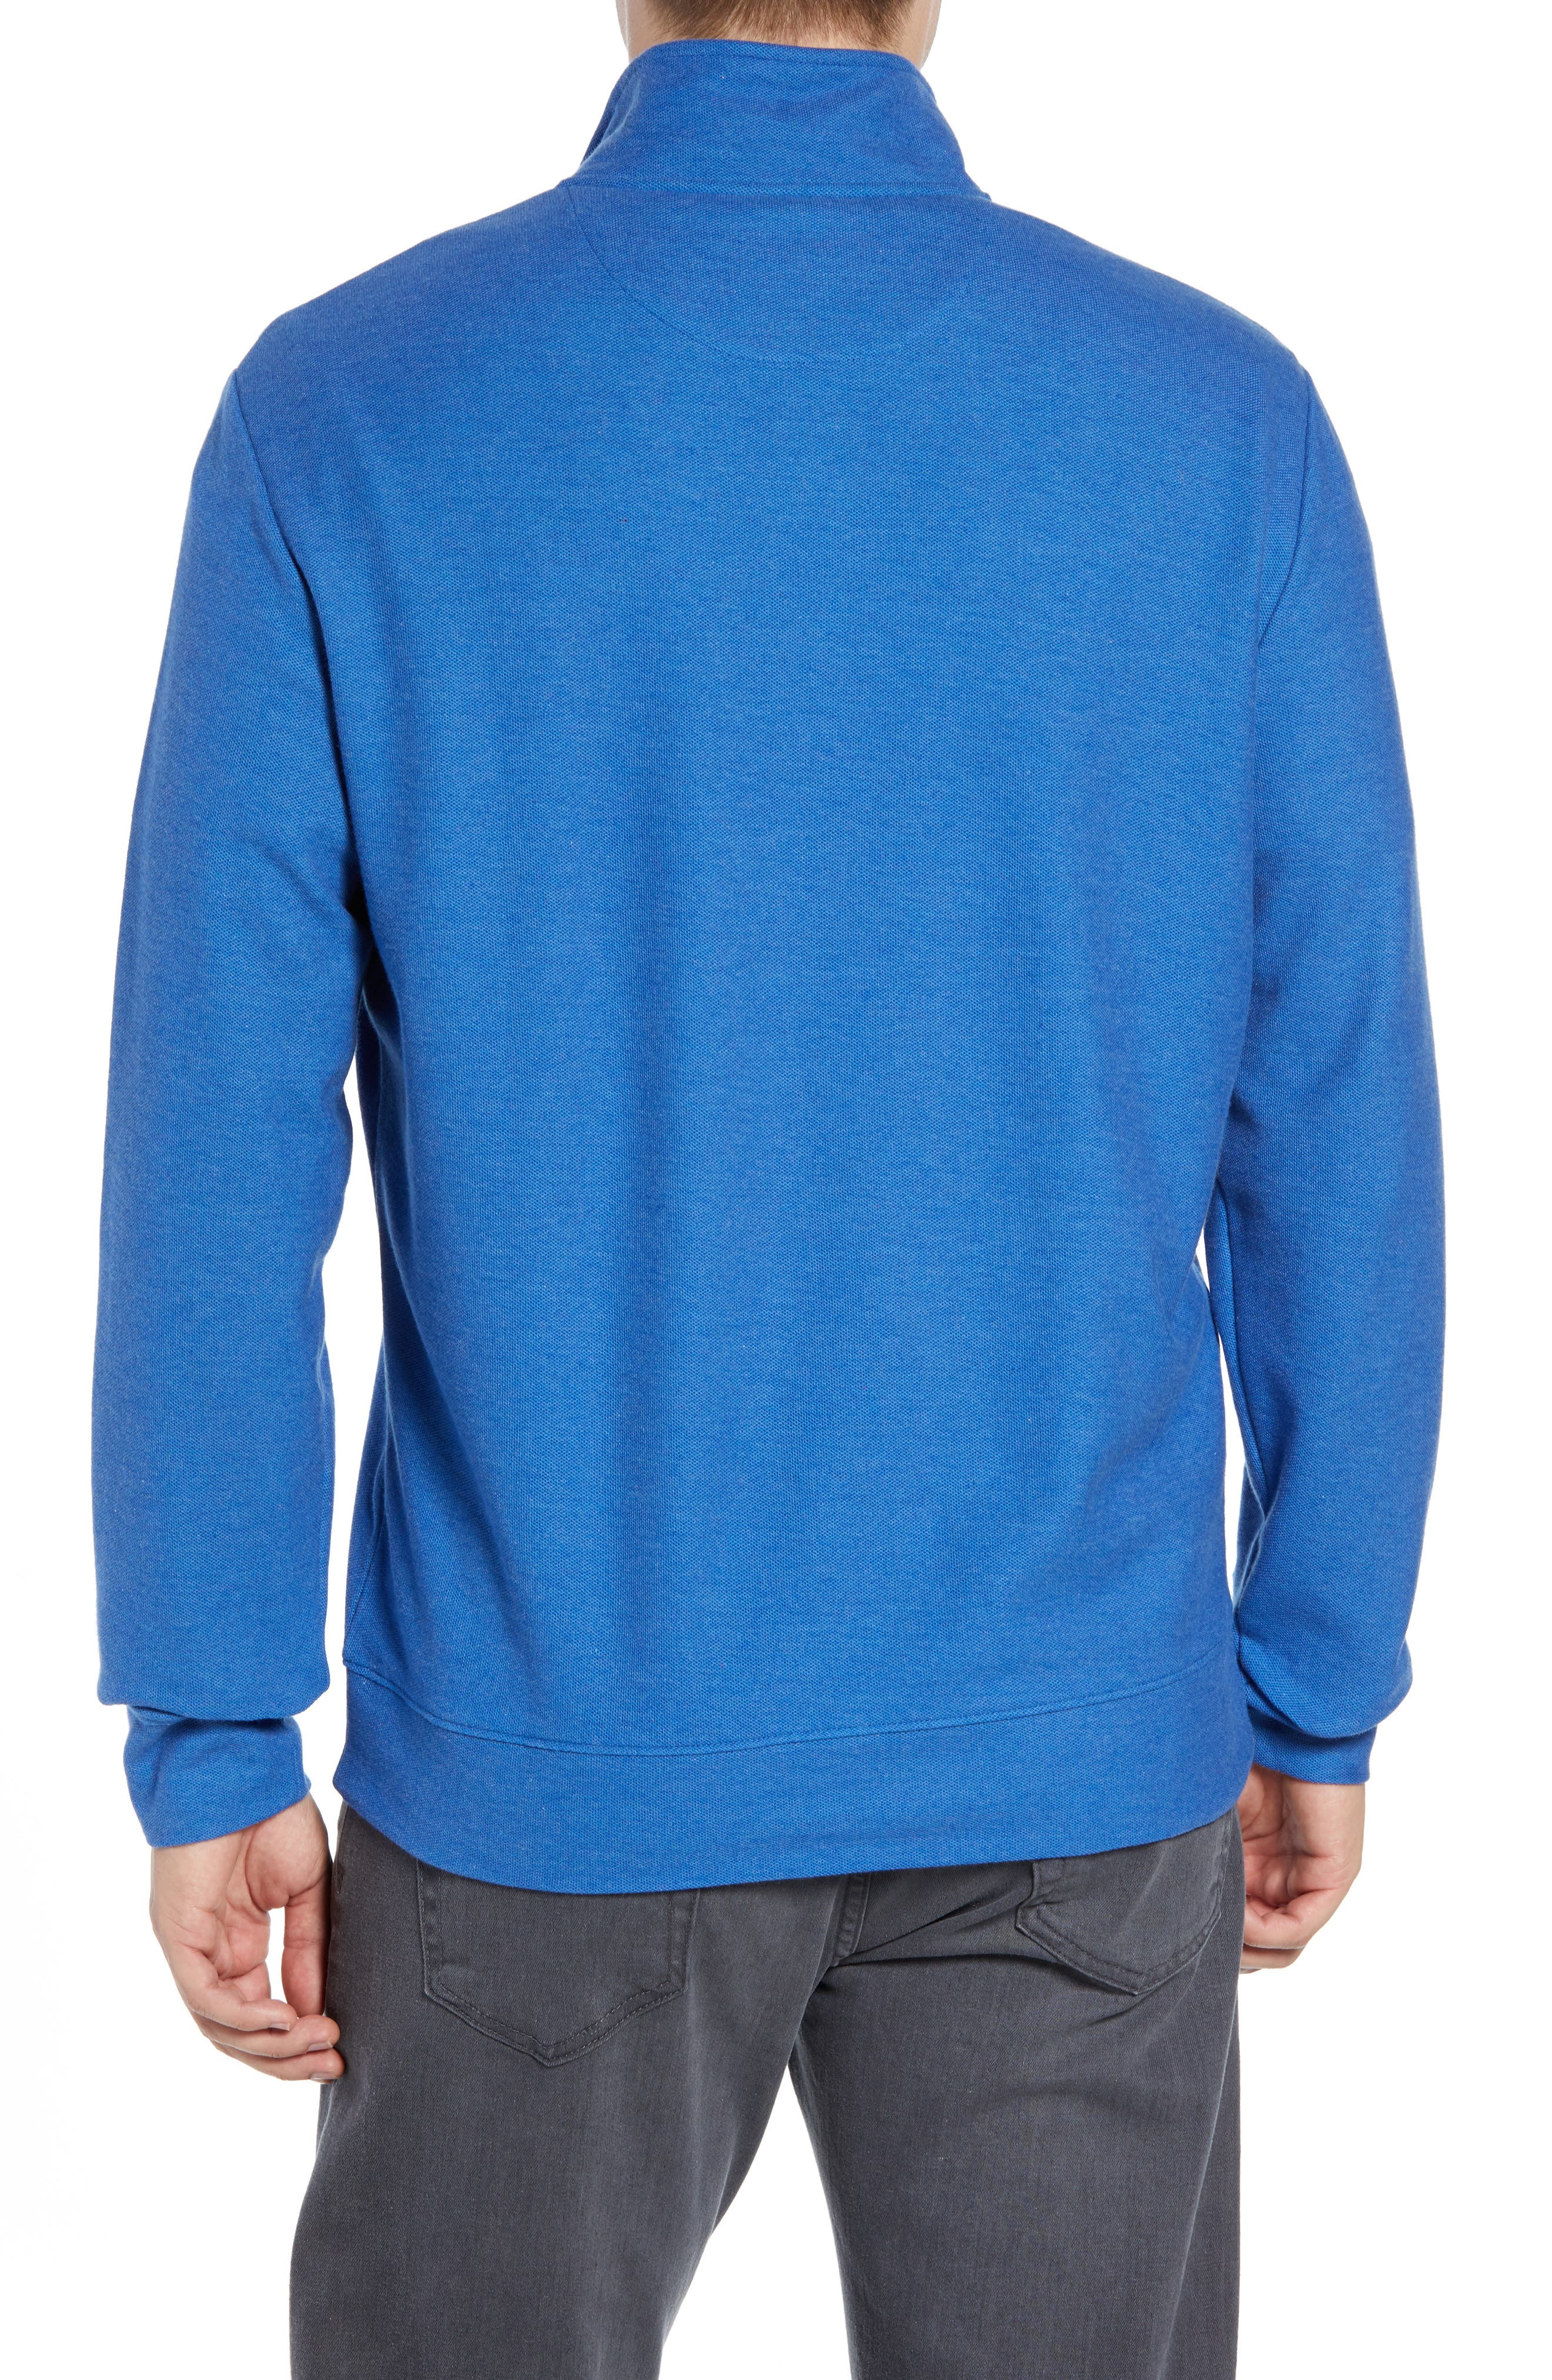 Breaker Saltwater Quarter Zip Pullover,                             Alternate thumbnail 2, color,                             HULL BLUE